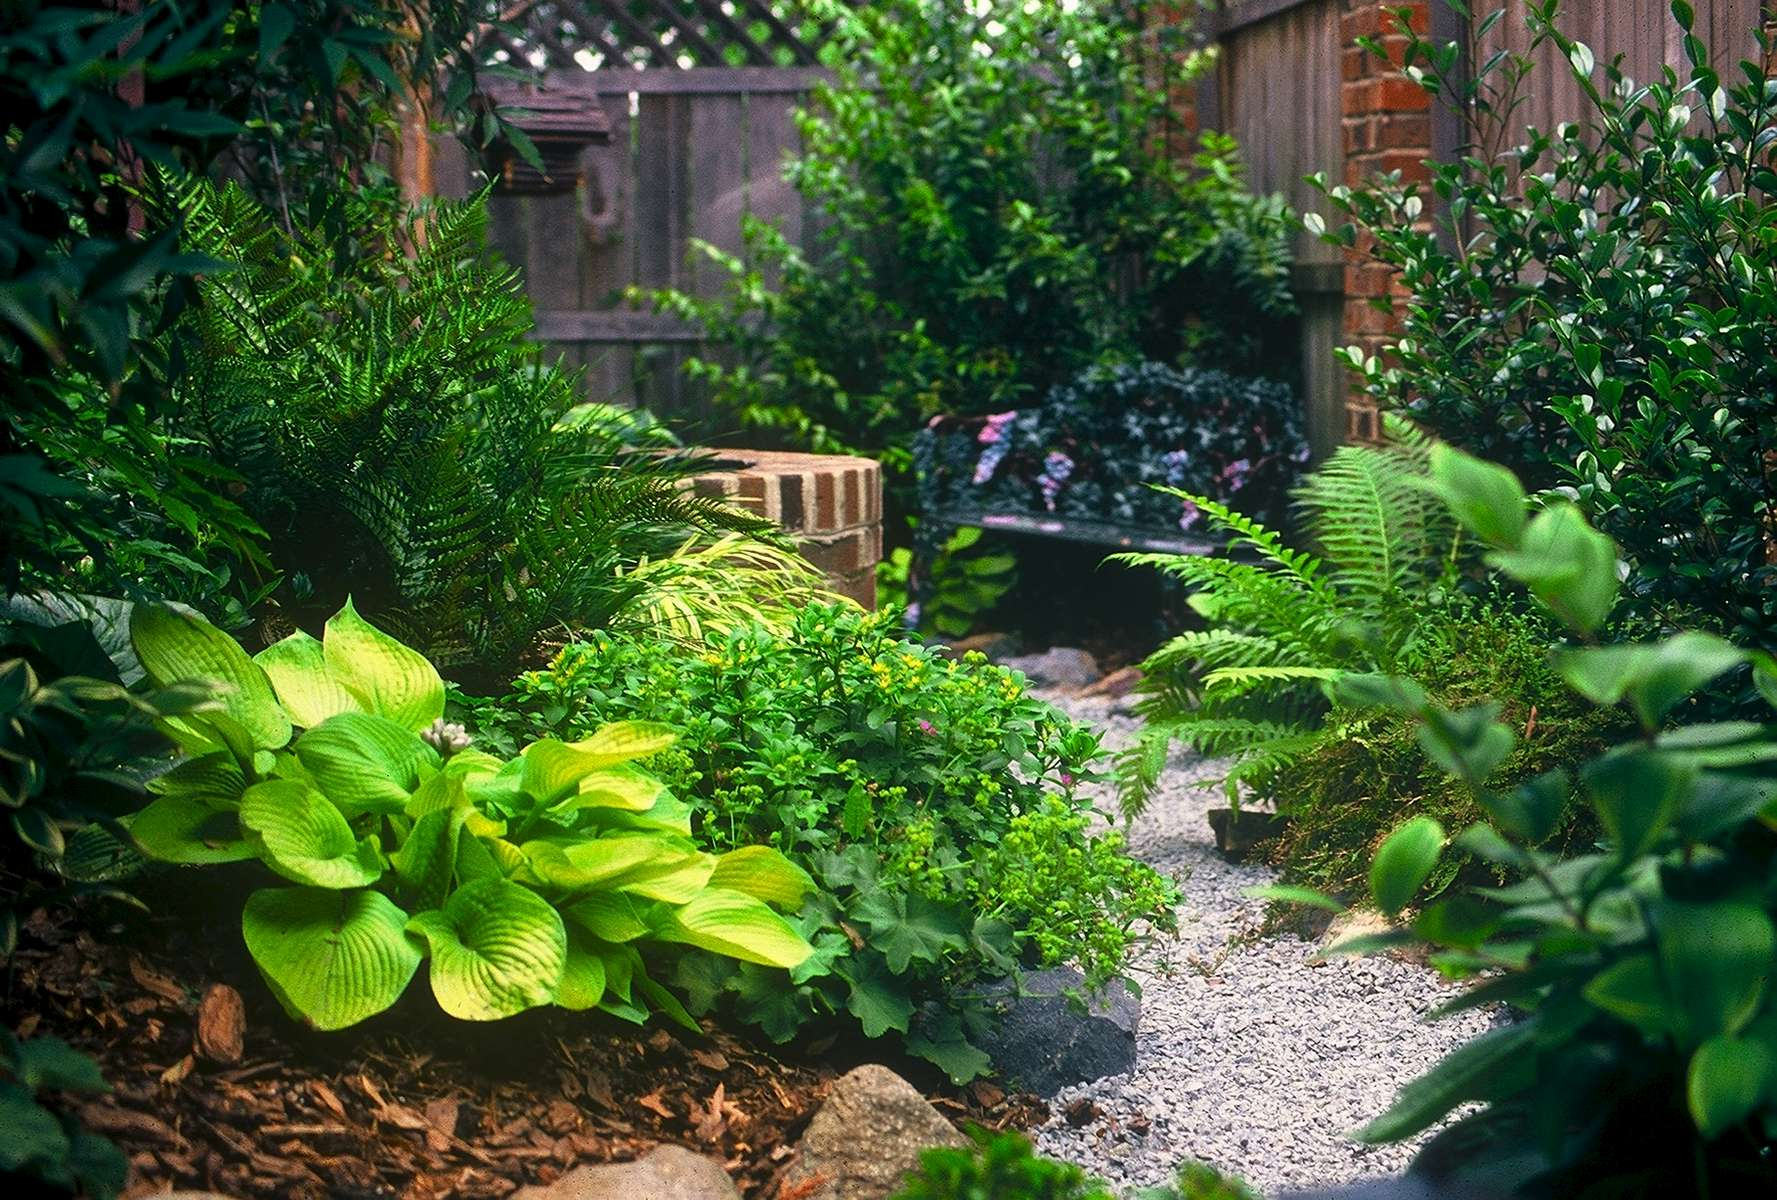 Top landscapers in charlotte nc - Residential A Secret Garden In Dilworth Charlotte Nc Dilworth Landscape Architects